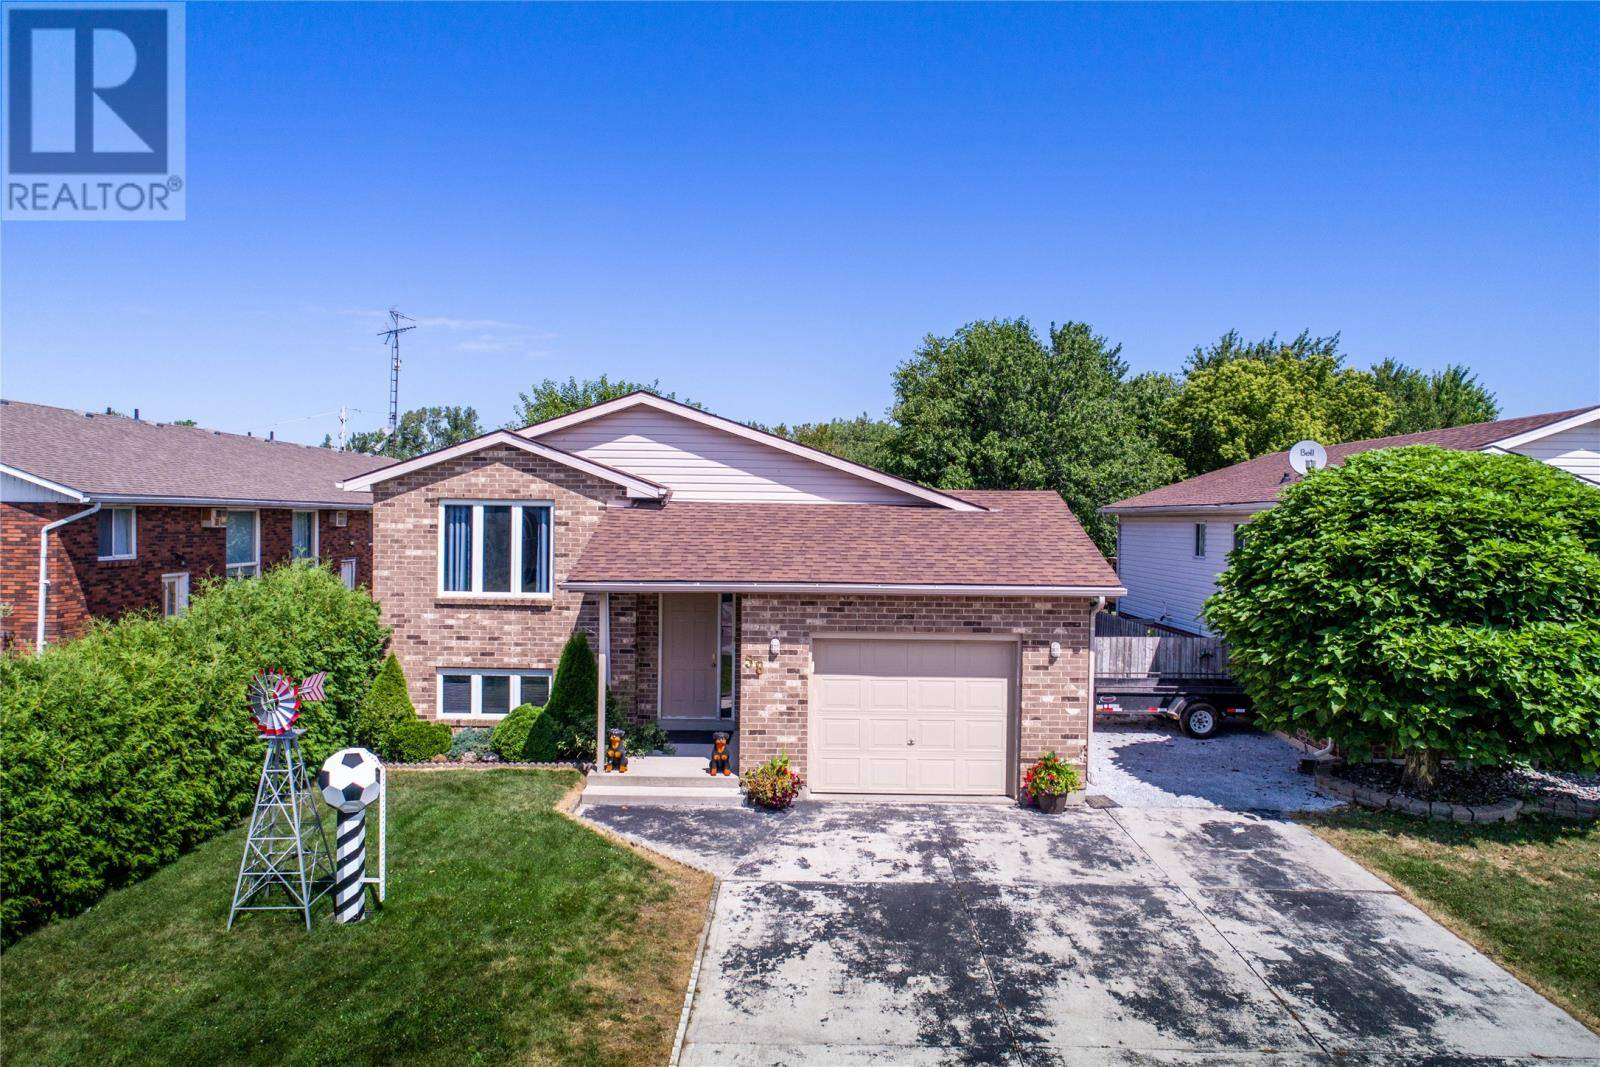 House for sale at 58 Massey Dr Tilbury Ontario - MLS: 19023658